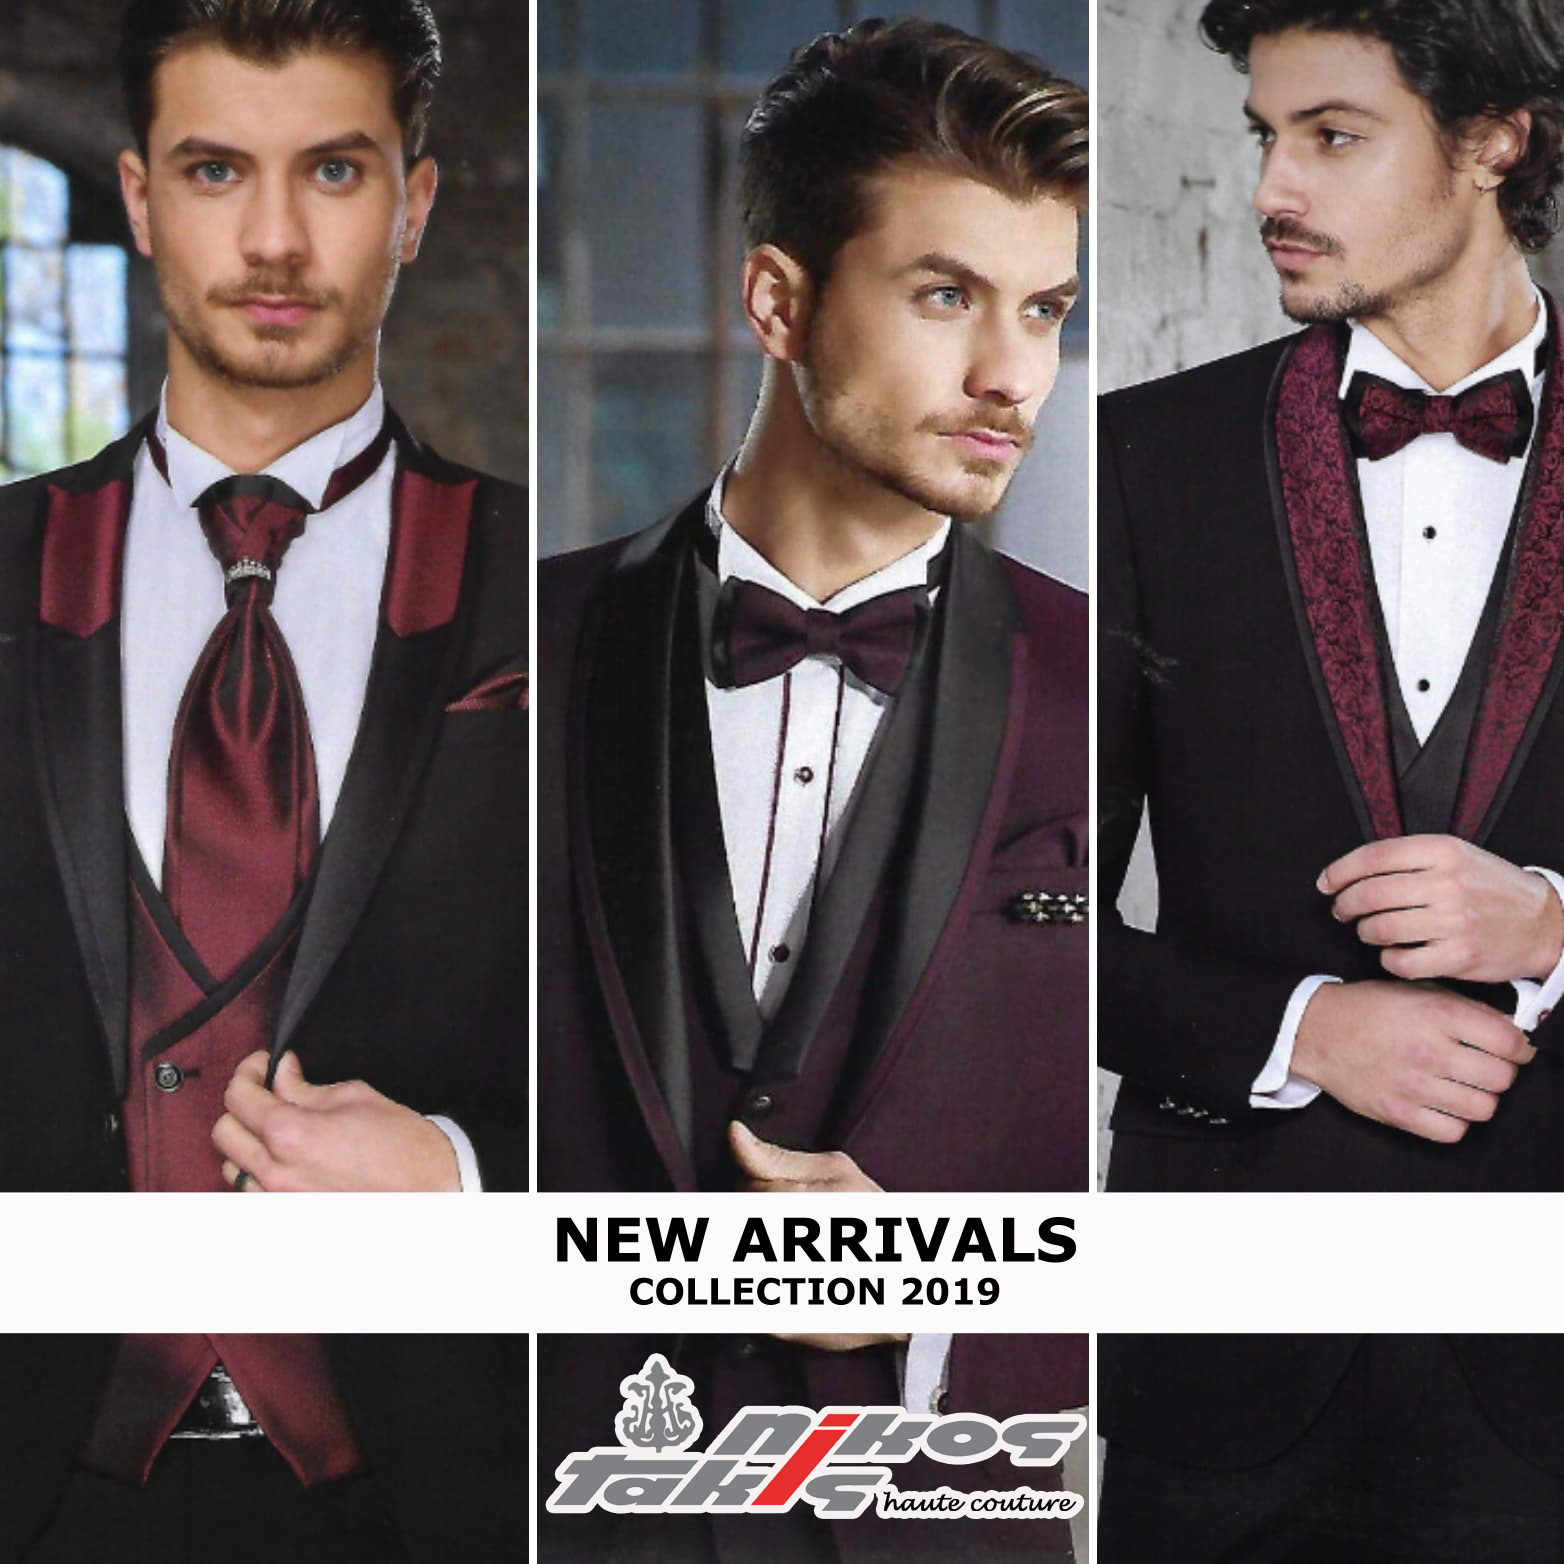 triplet suits2019 in black bordeaux WITH LOGOS